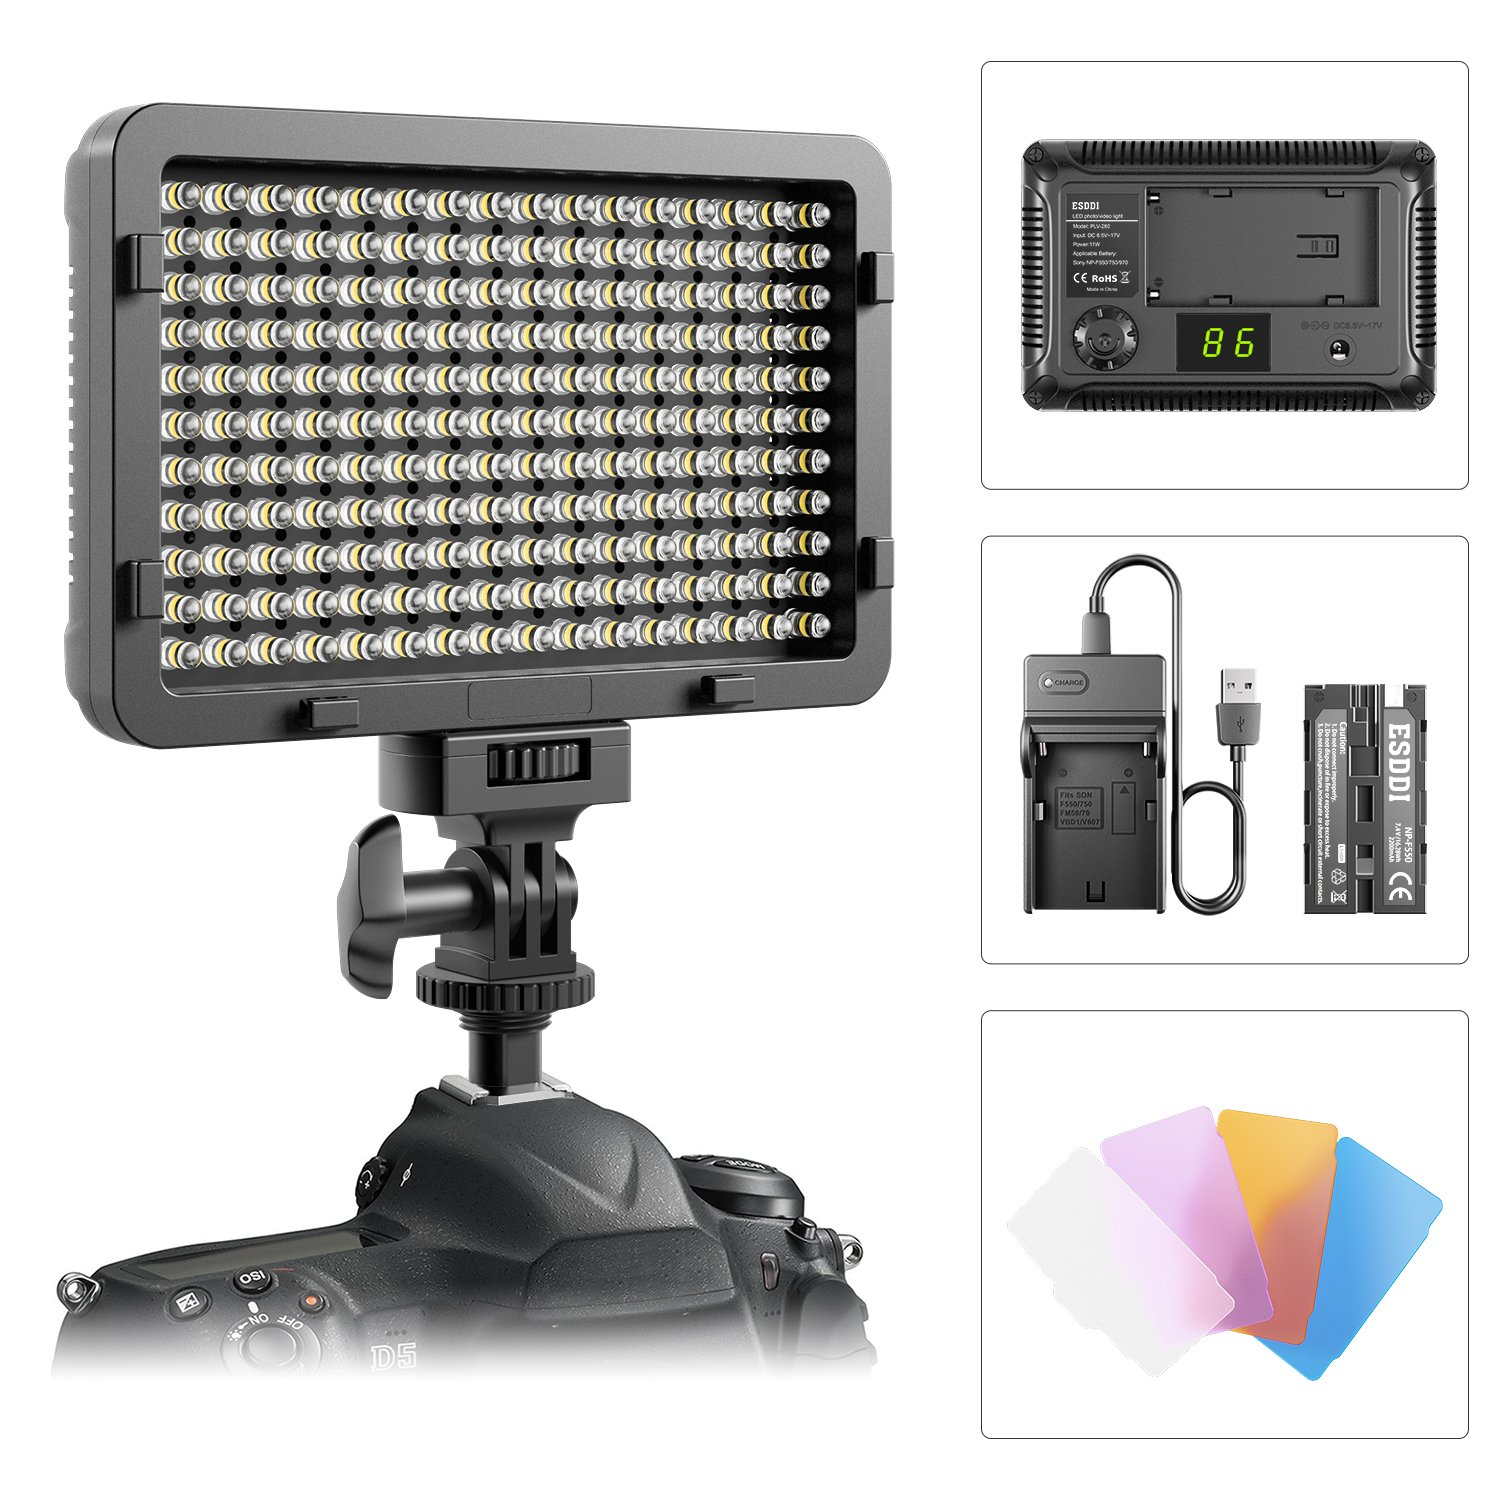 LED Video Light, ESDDI 176 LED Ultra Bright Dimmable Camera Panel Light with battery and USB Cable for Canon, Nikon, Pentax, Panasonic, Sony, Samsung, Olympus and All DSLR Cmeras by ESDDI